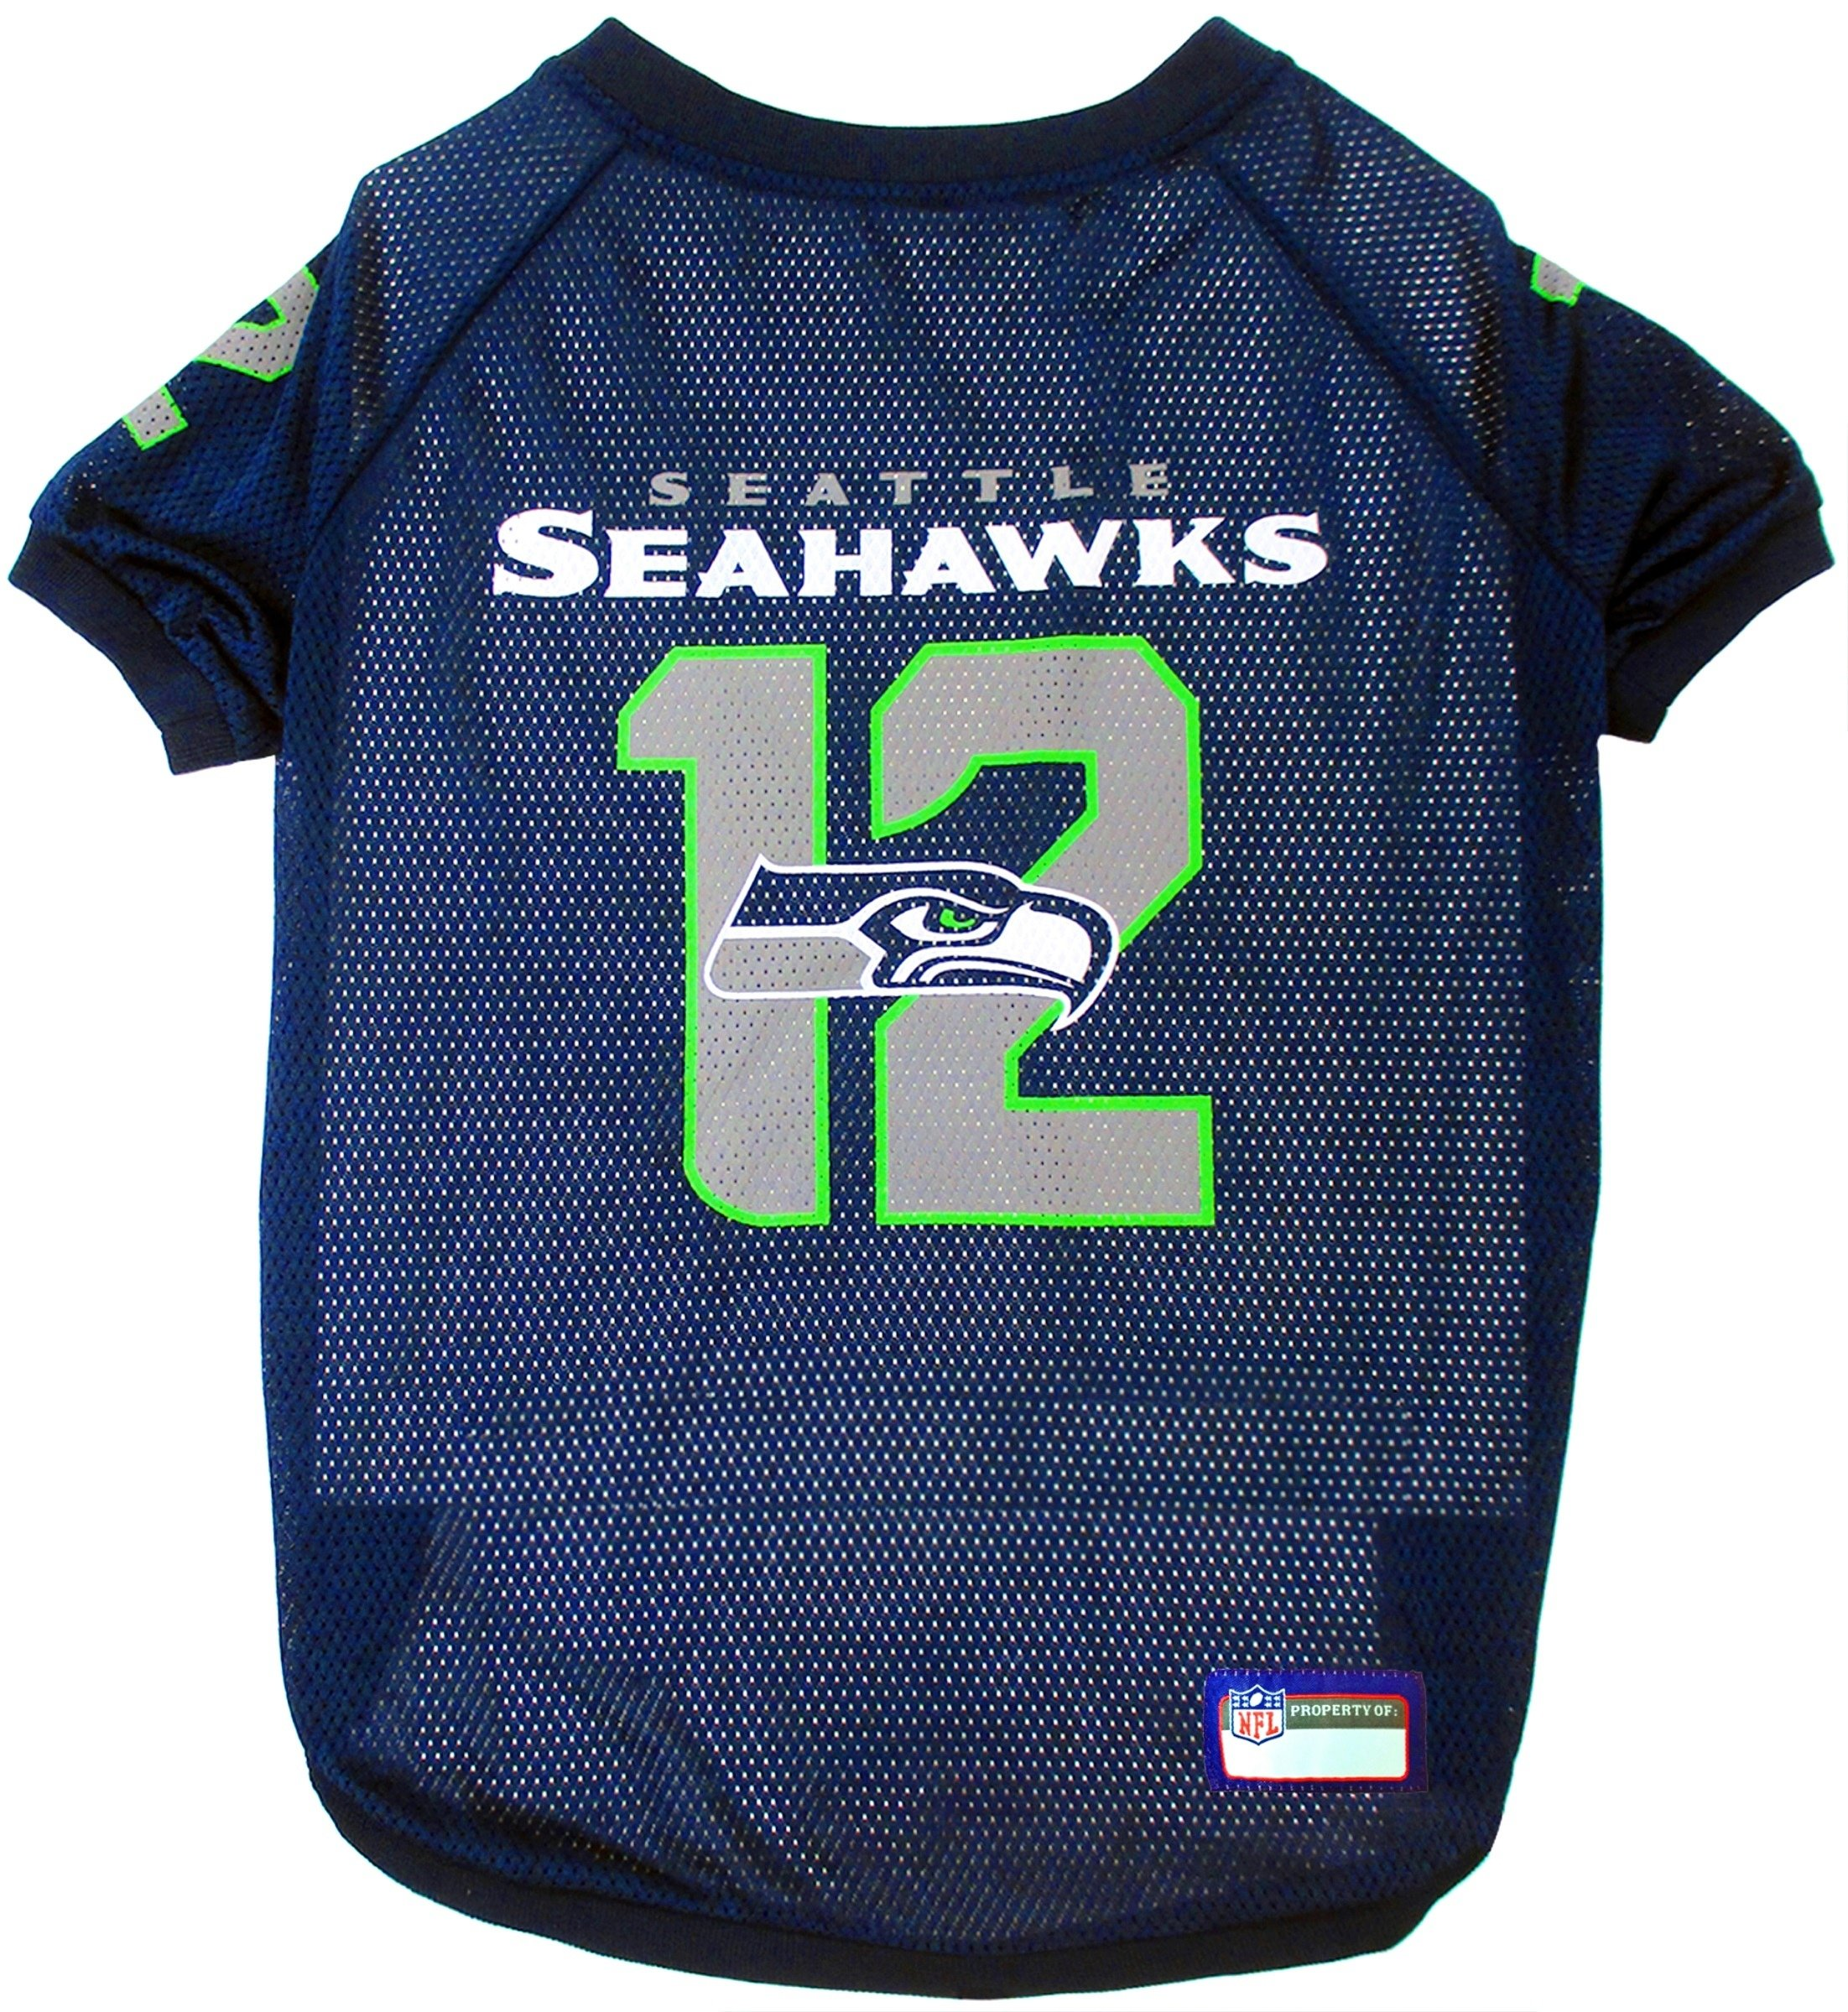 NFL Seattle Seahawks Jersey for Pets. - Seattle Seahawks Raglan Jersey 12th Man - XX-Large. Cutest Football Jersey for Dogs & Cats by Pets First